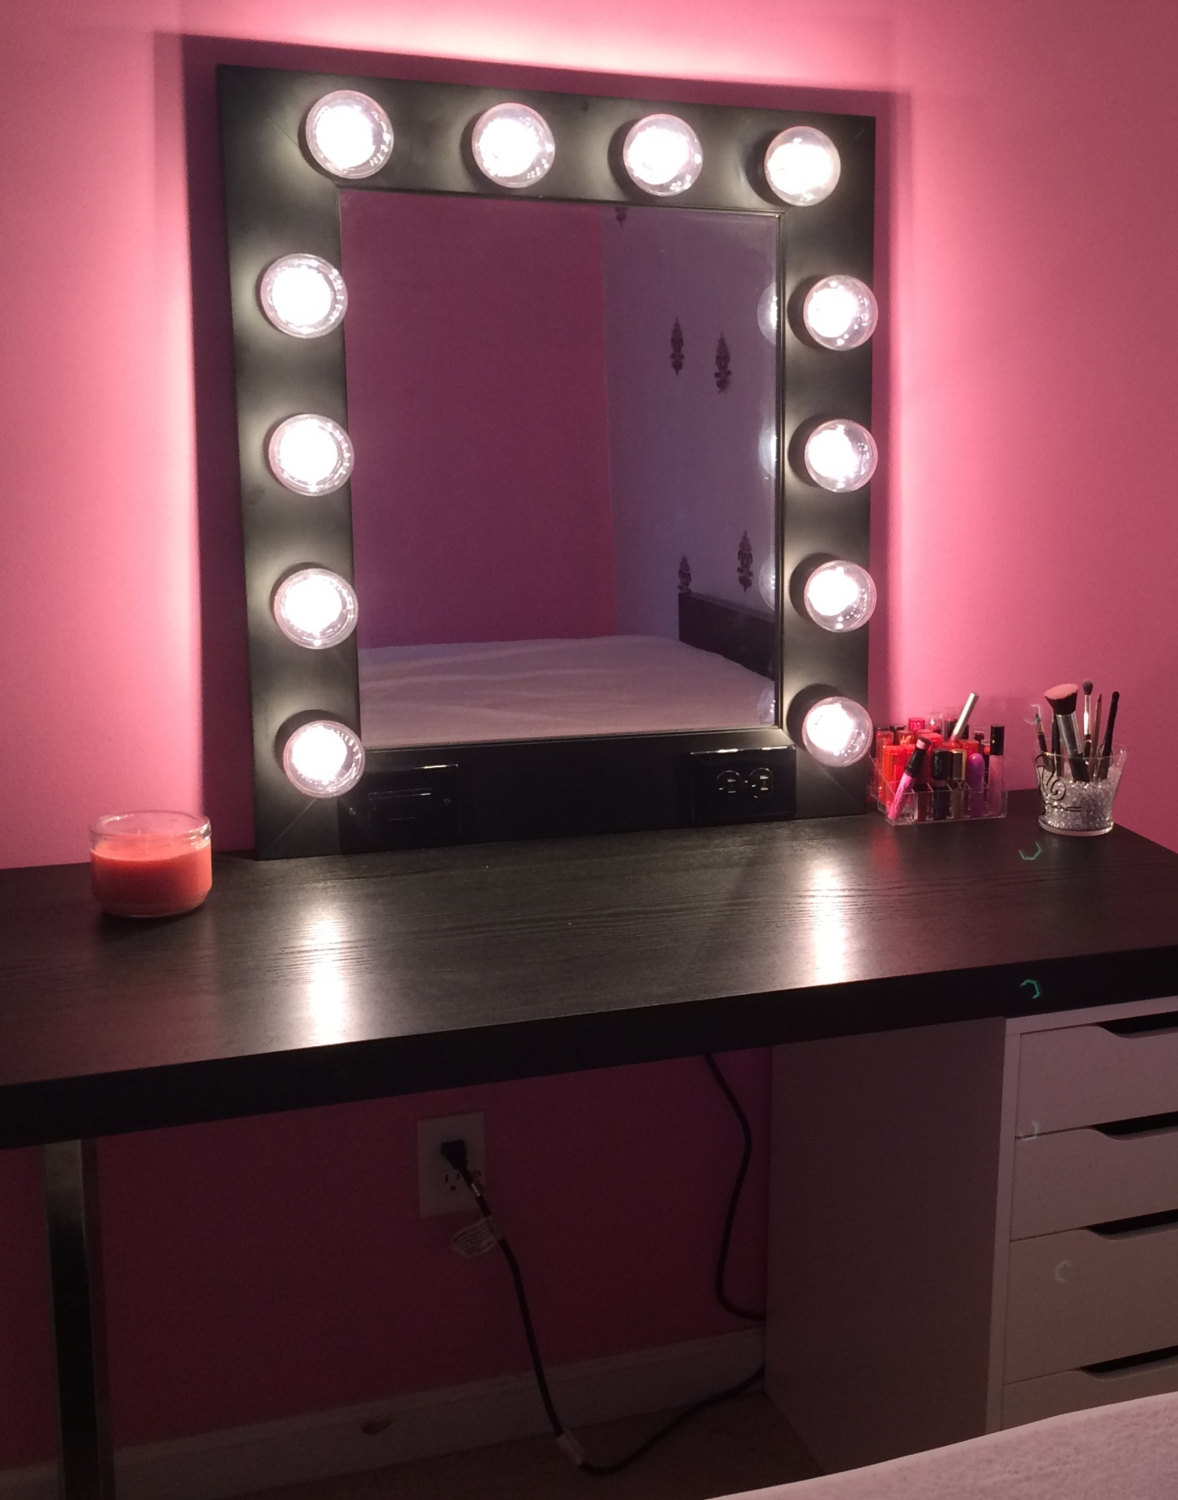 Bedroom Vanity Set with Lights White